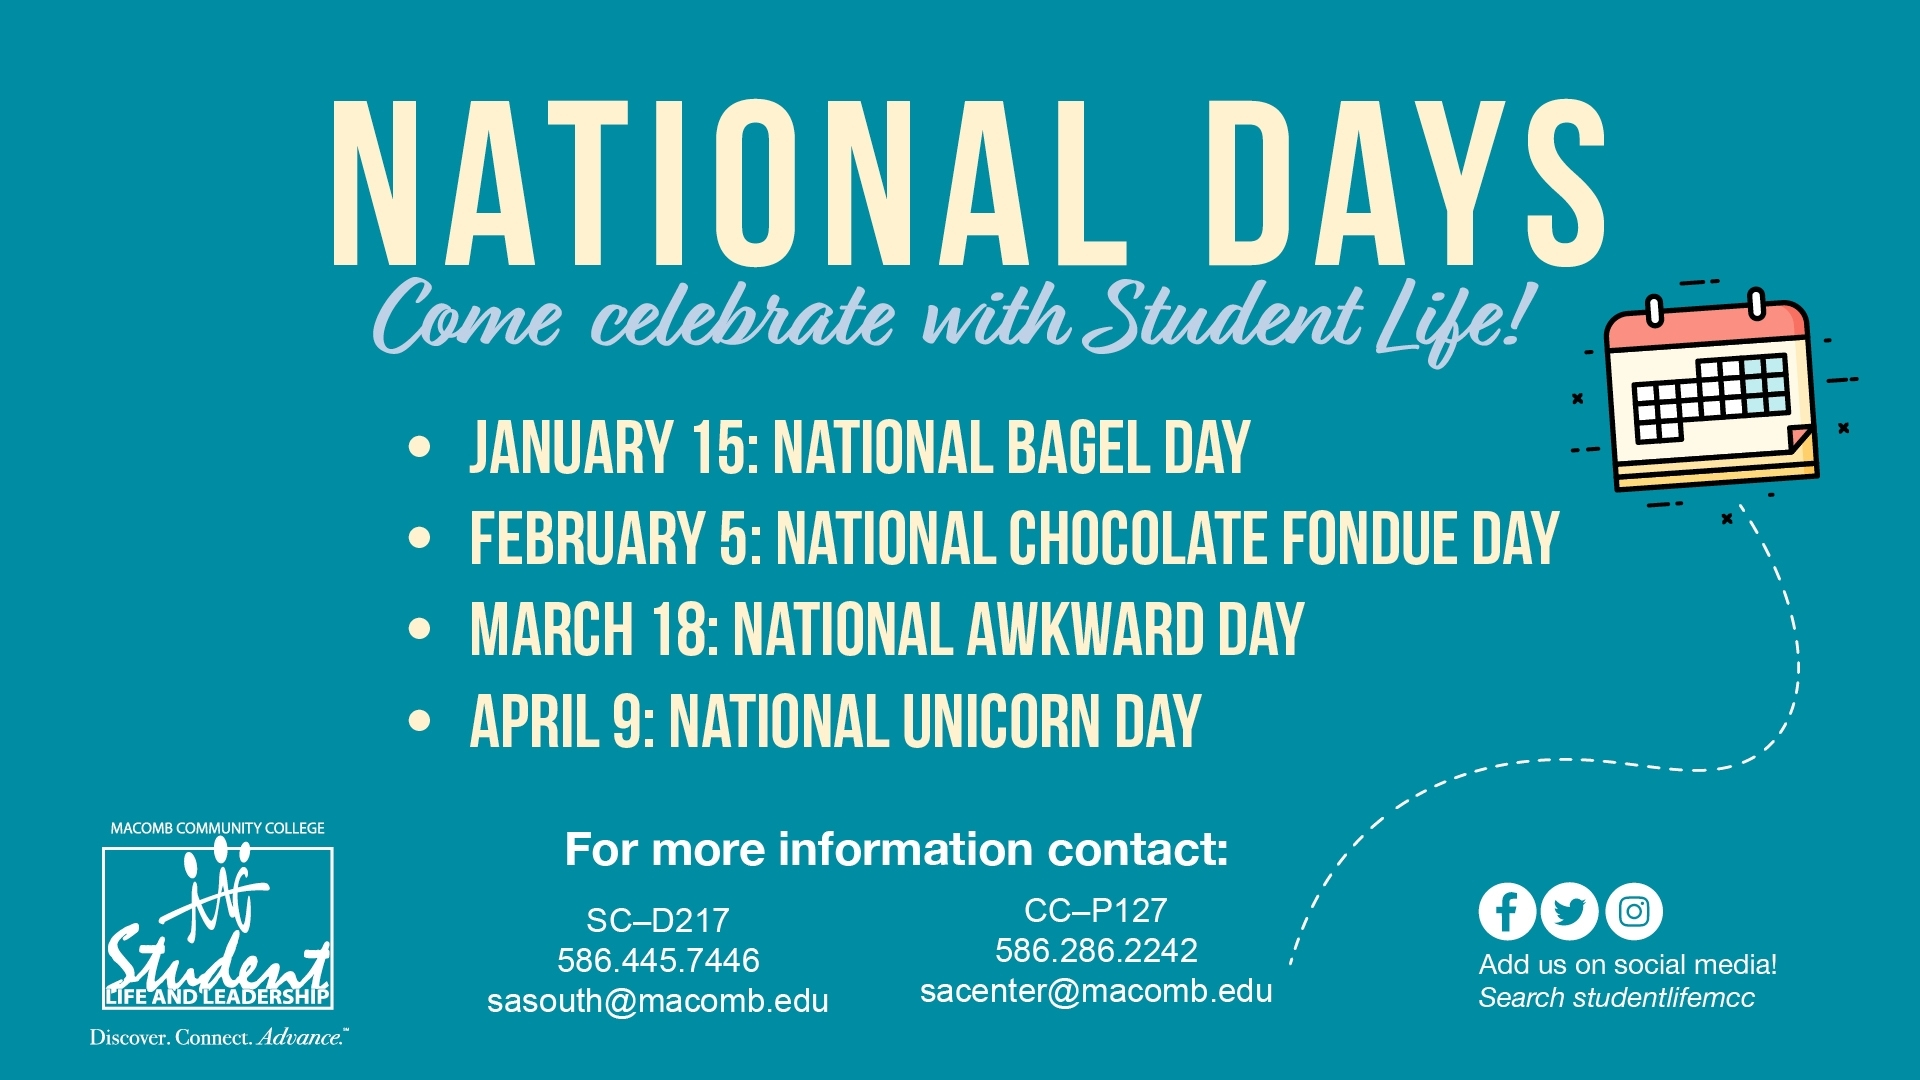 Macomb Community College - Cancelled - National Days